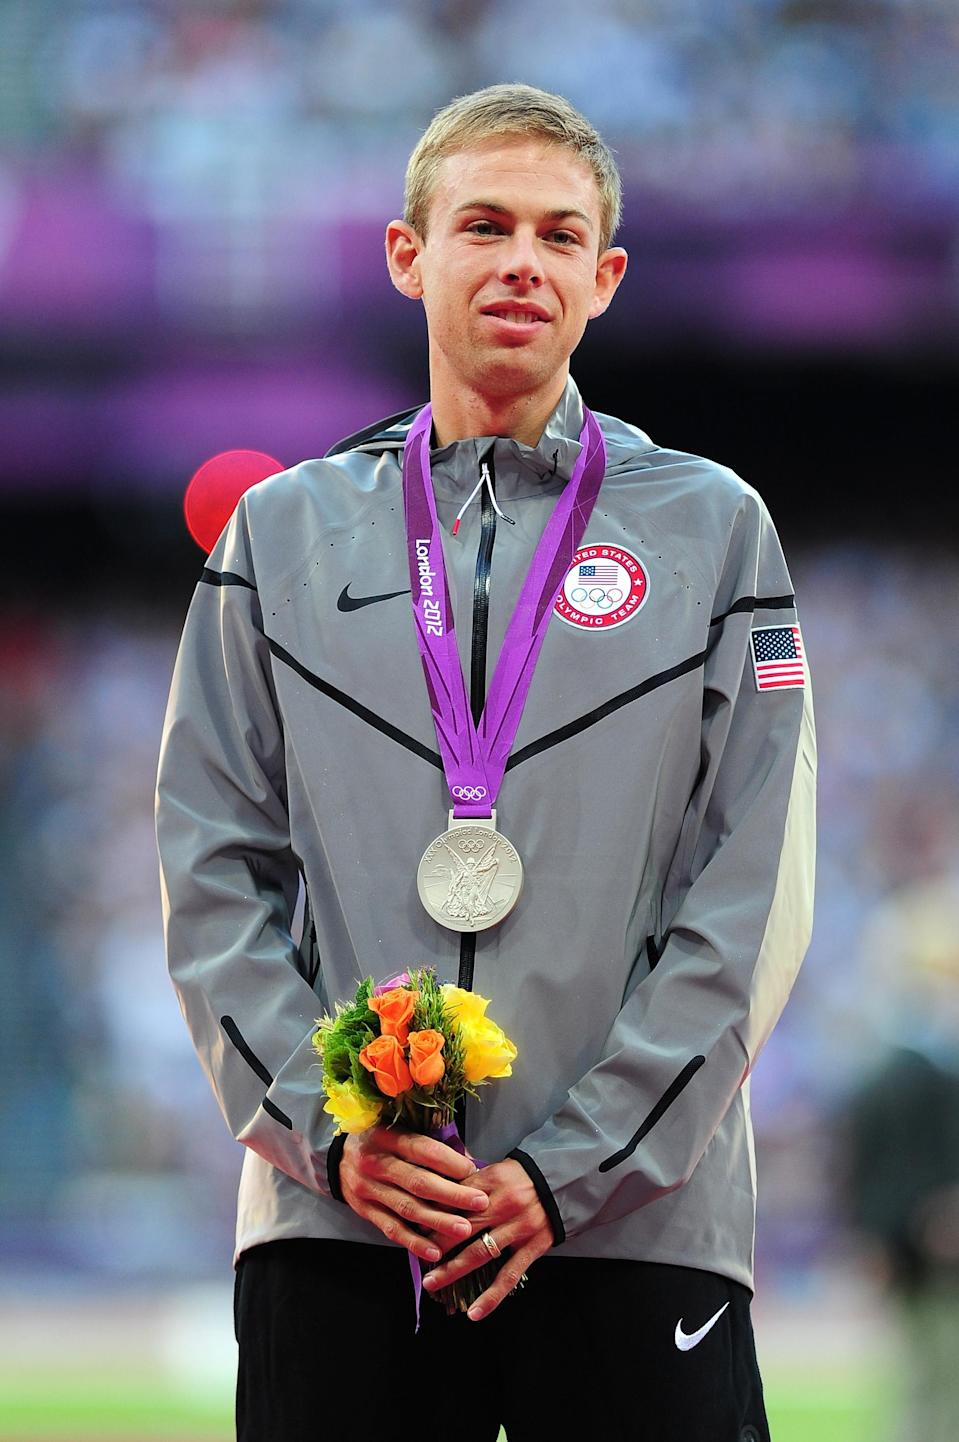 """Silver medalist <a href=""""http://sports.yahoo.com/olympics/track-field/galen-rupp-1133597/"""" data-ylk=""""slk:Galen Rupp"""" class=""""link rapid-noclick-resp"""">Galen Rupp</a> of the United States poses on the podium for Men's 10,000m on Day 9 of the London 2012 Olympic Games at the Olympic Stadium on August 5, 2012 in London, England. (Photo by Mike Hewitt/Getty Images)"""